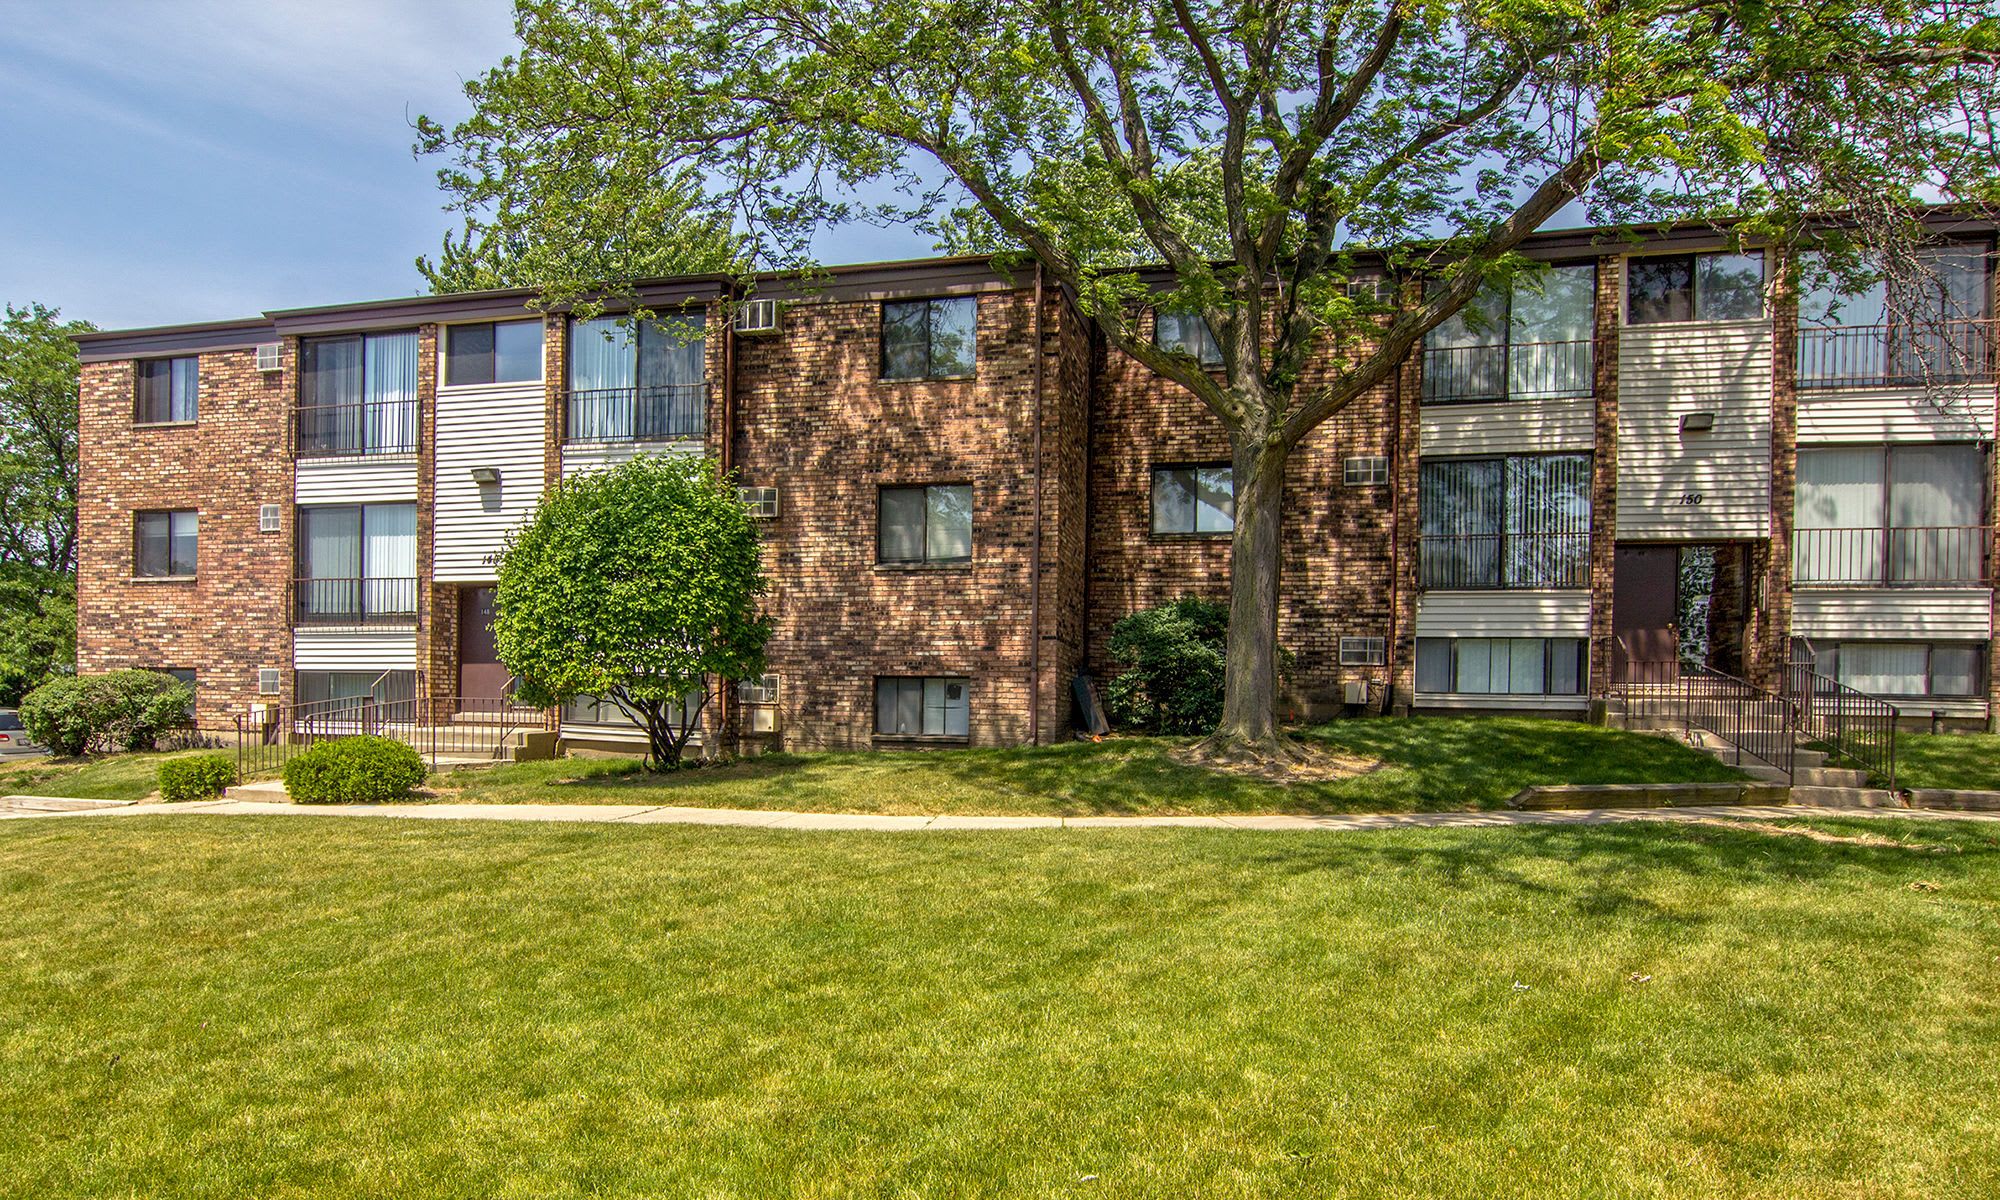 Apartments in Glendale Heights, Illinois